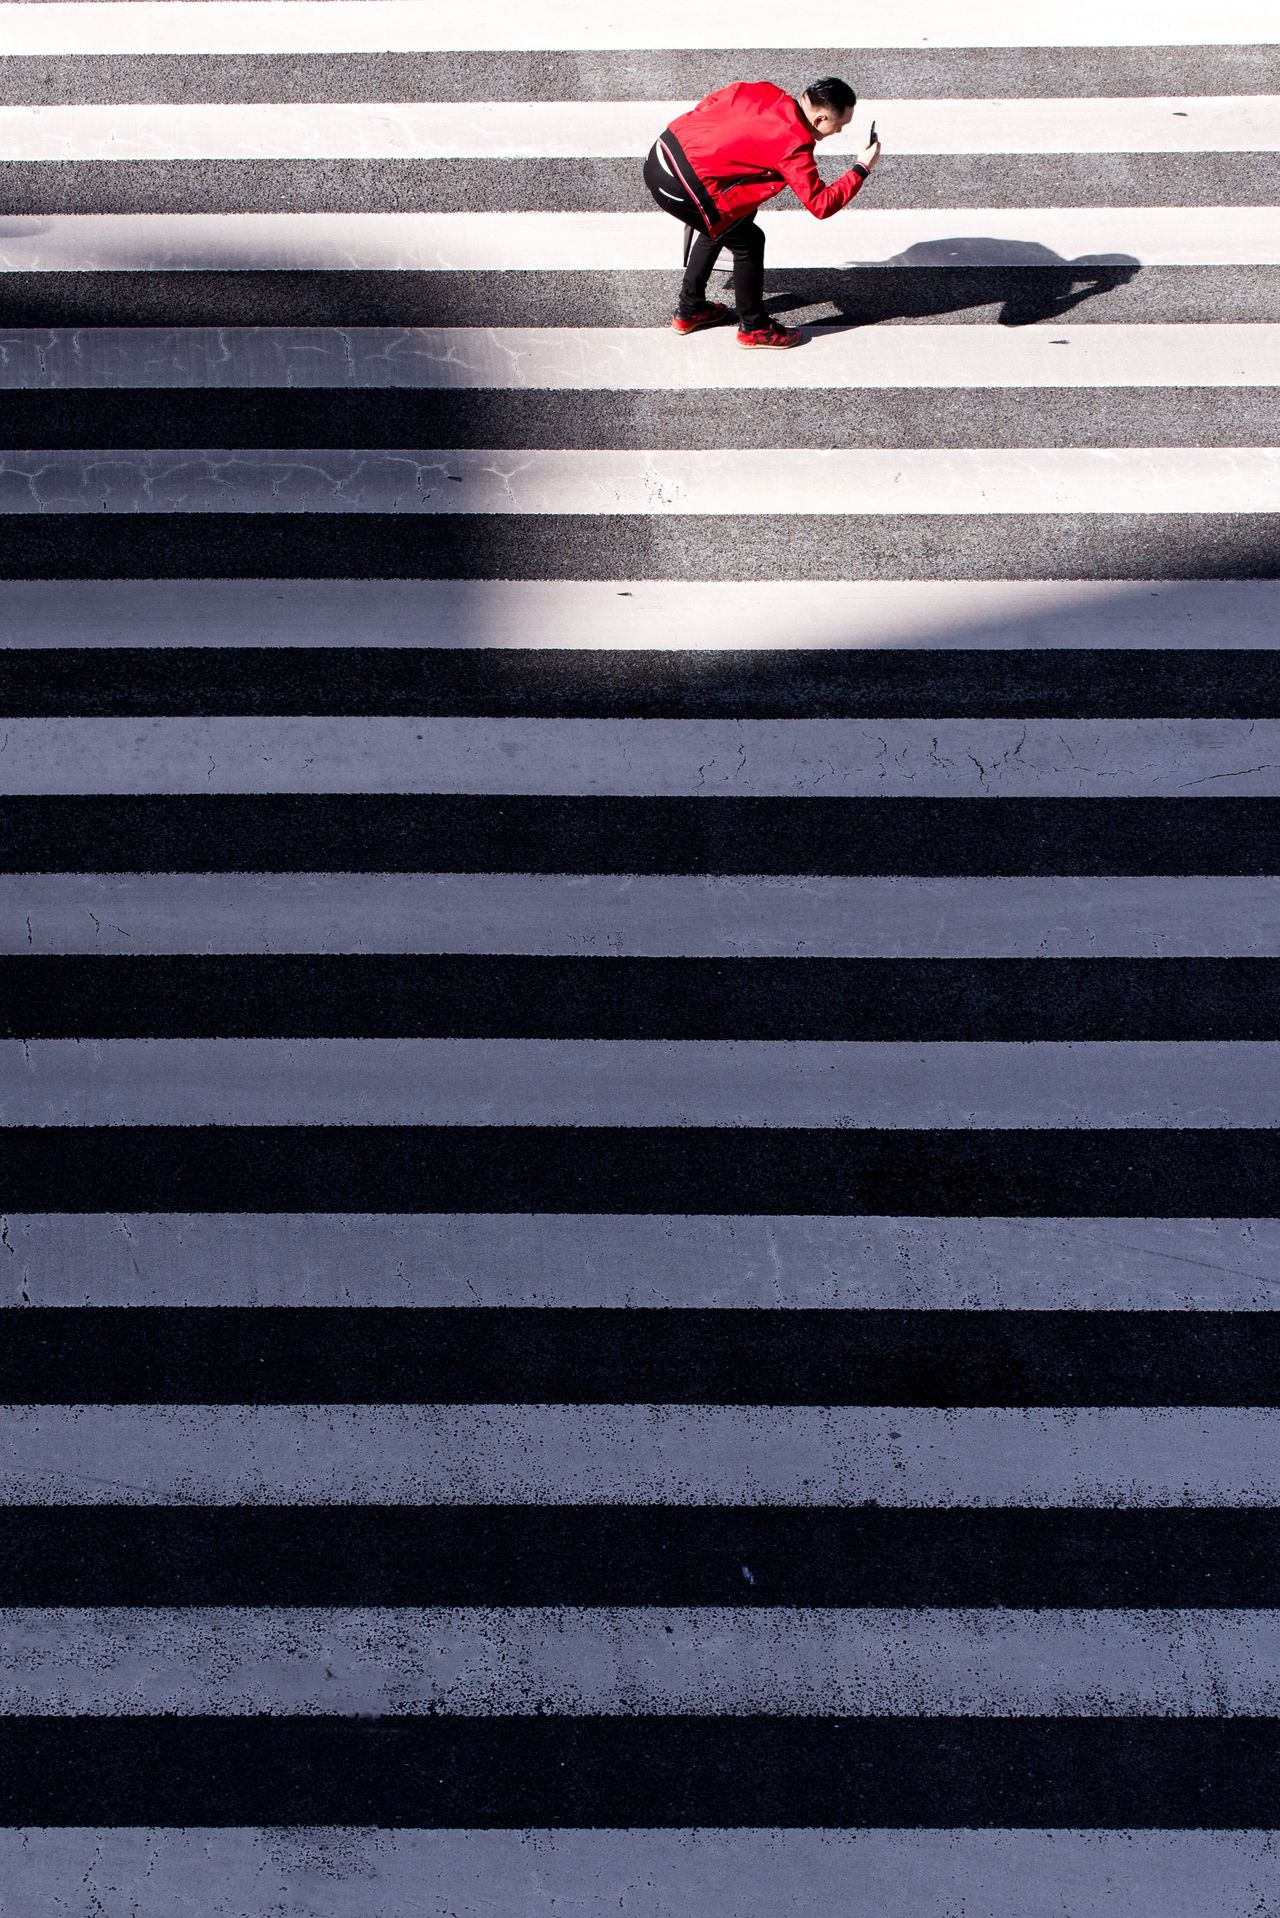 The City Light Street City Street Tokyo Minimalism Minimalist Cityscape Minimal Streetphotography Light And Shadow City Japan High Angle View